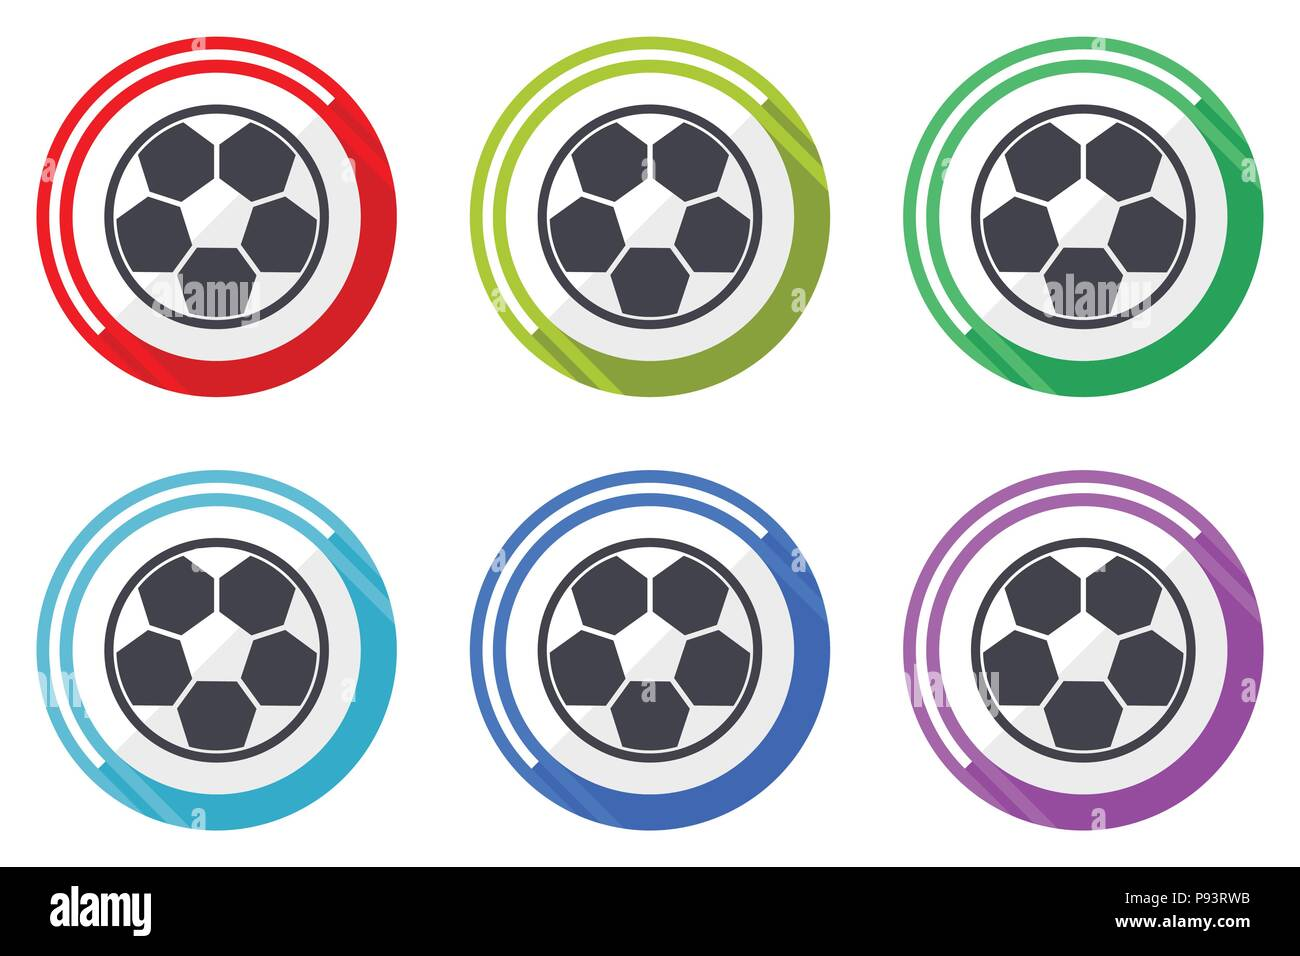 Soccer web vector icons, set of colorful flat round design editable internet buttons in eps 10 for webdesign and smartphone applicatios - Stock Vector